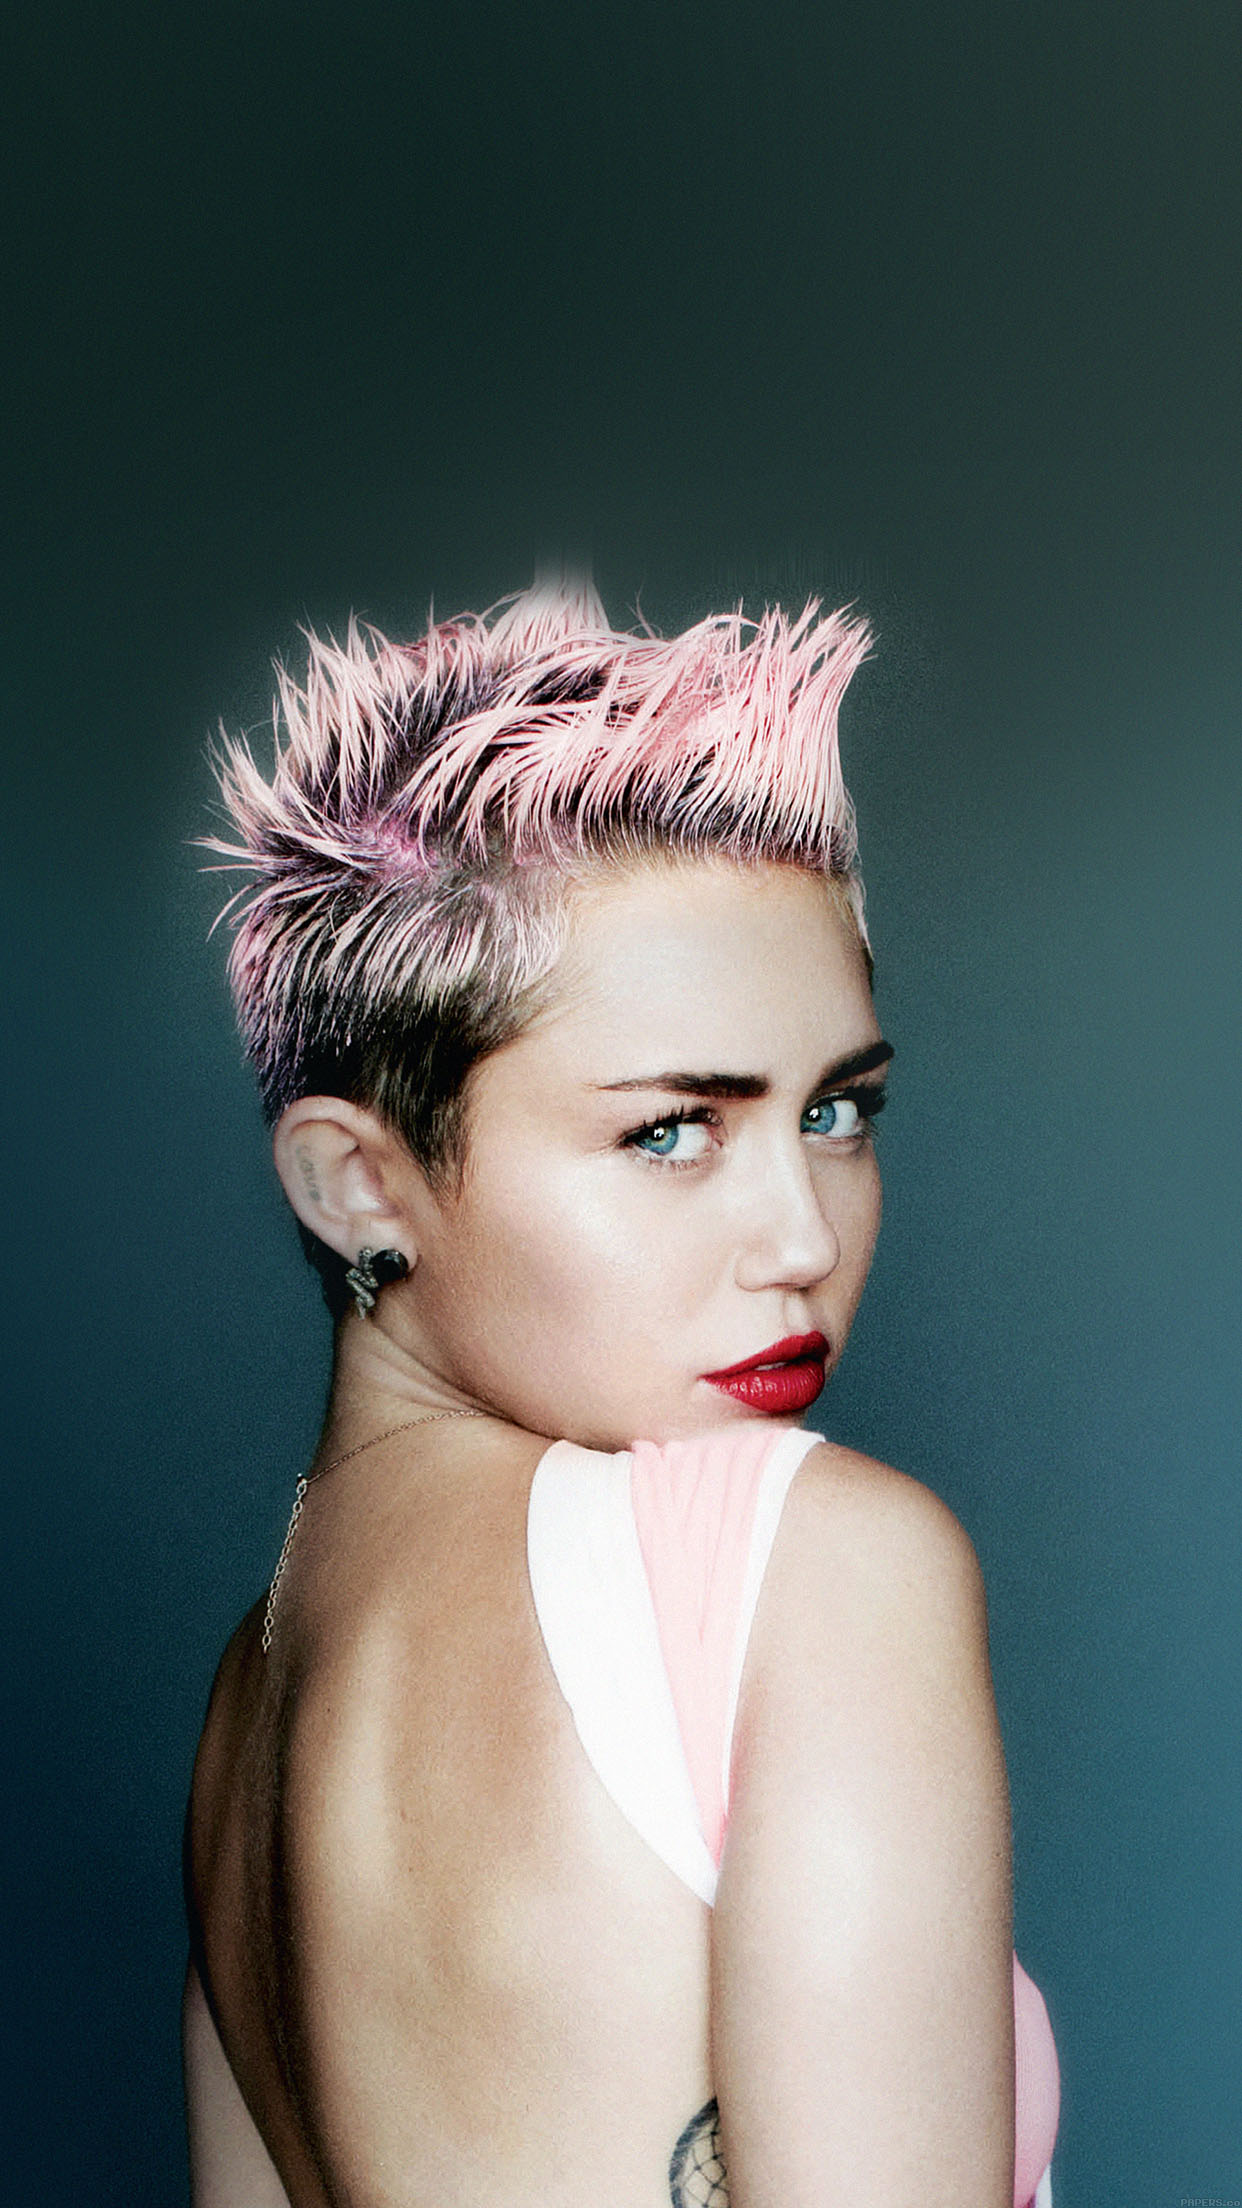 Wallpaper Miley Cyrus For V Face Music Android wallpaper